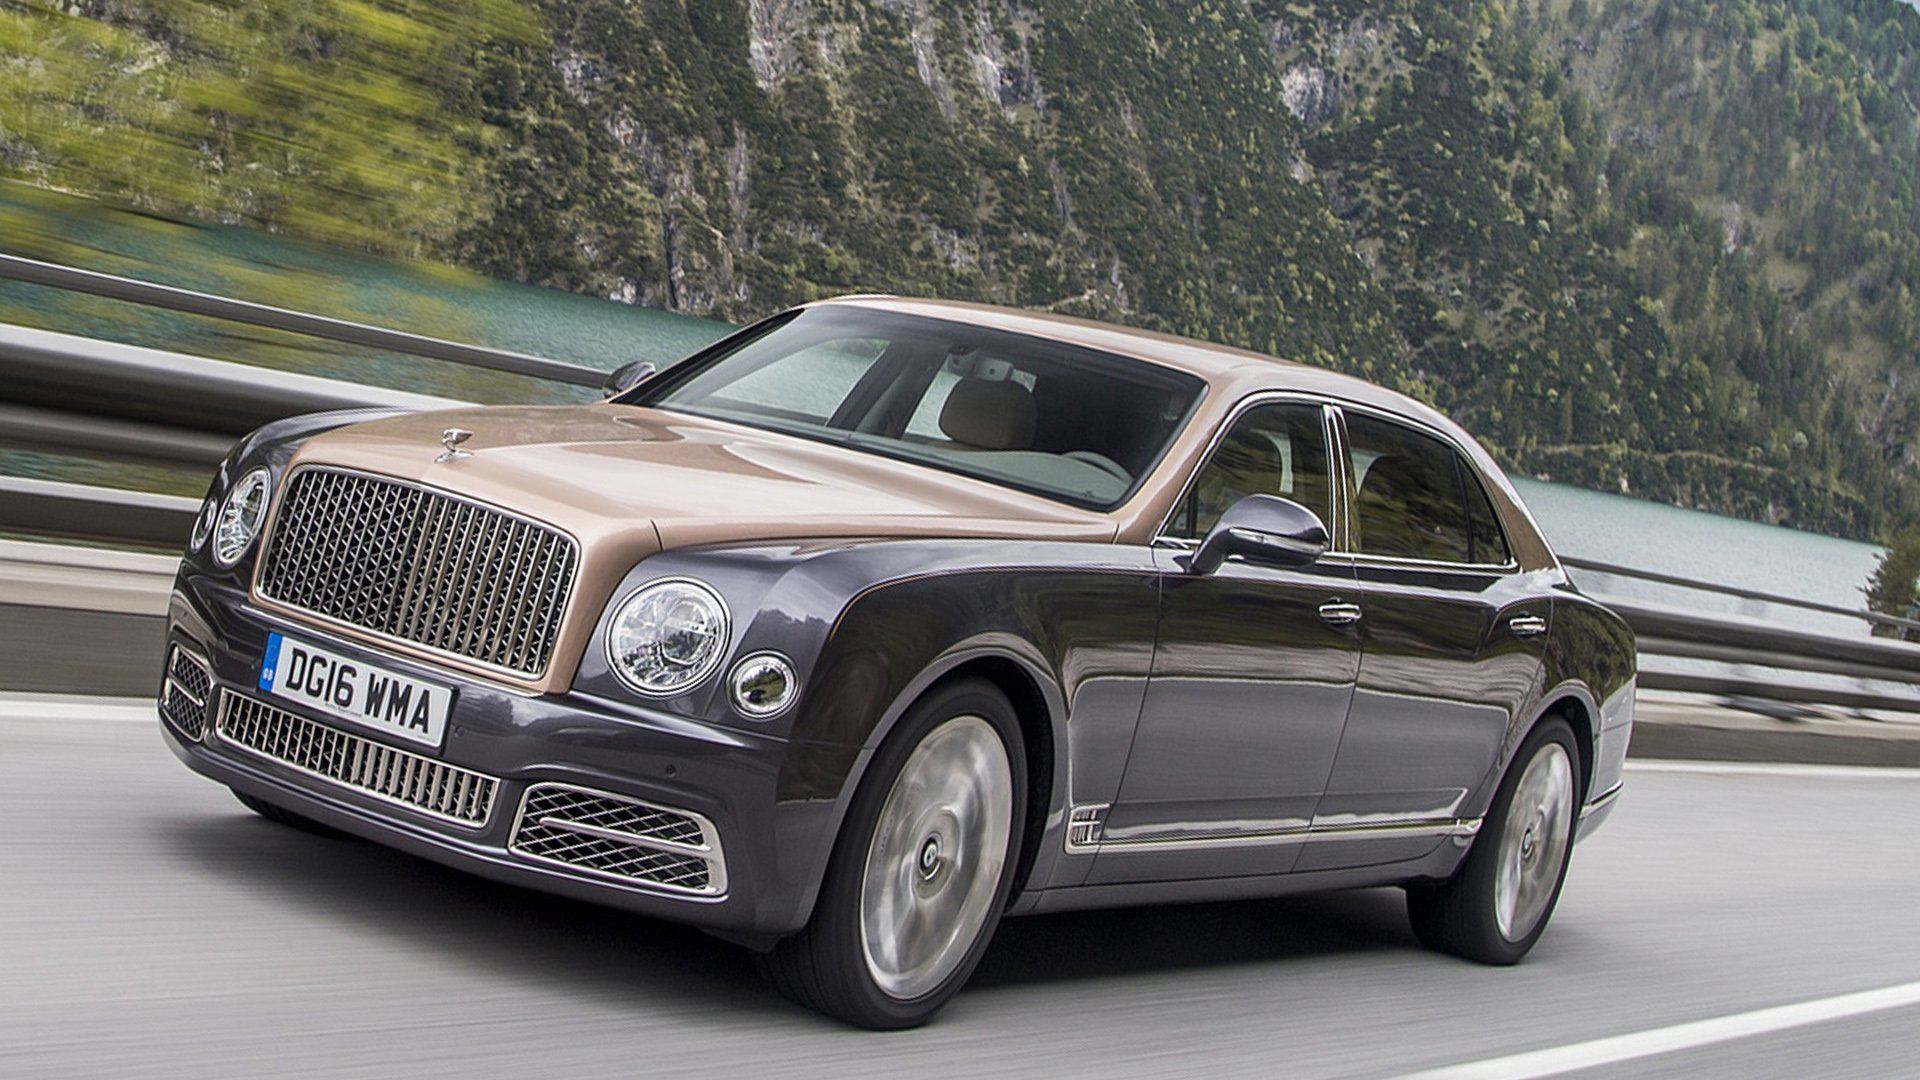 New 2019 Bentley Mulsanne Price